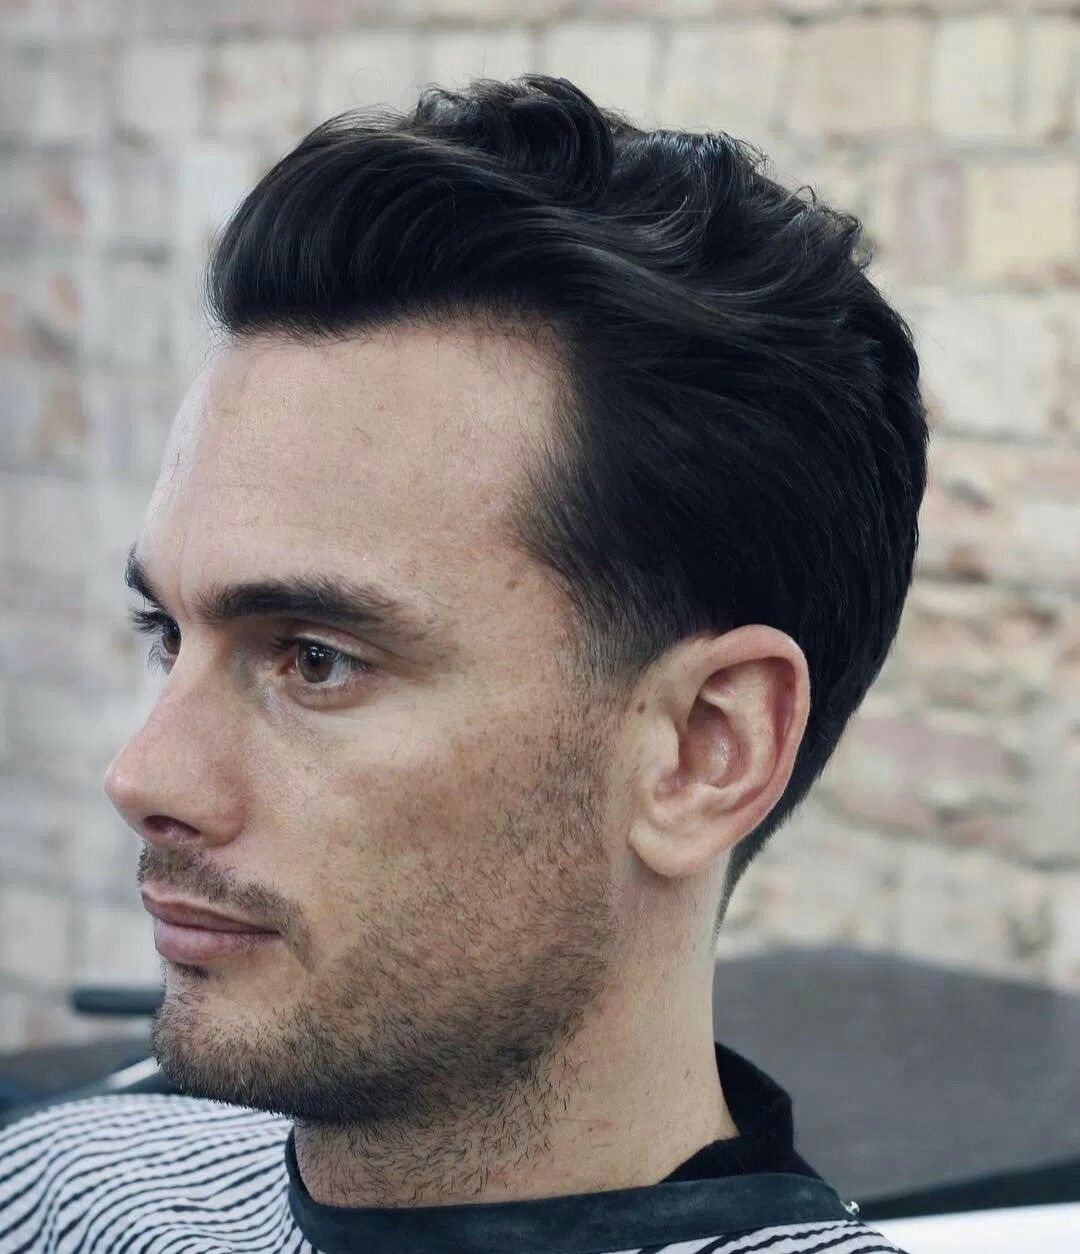 Slicked back hairstyles | Mens hairstyles, Cool hairstyles for men, Summer hairstyles